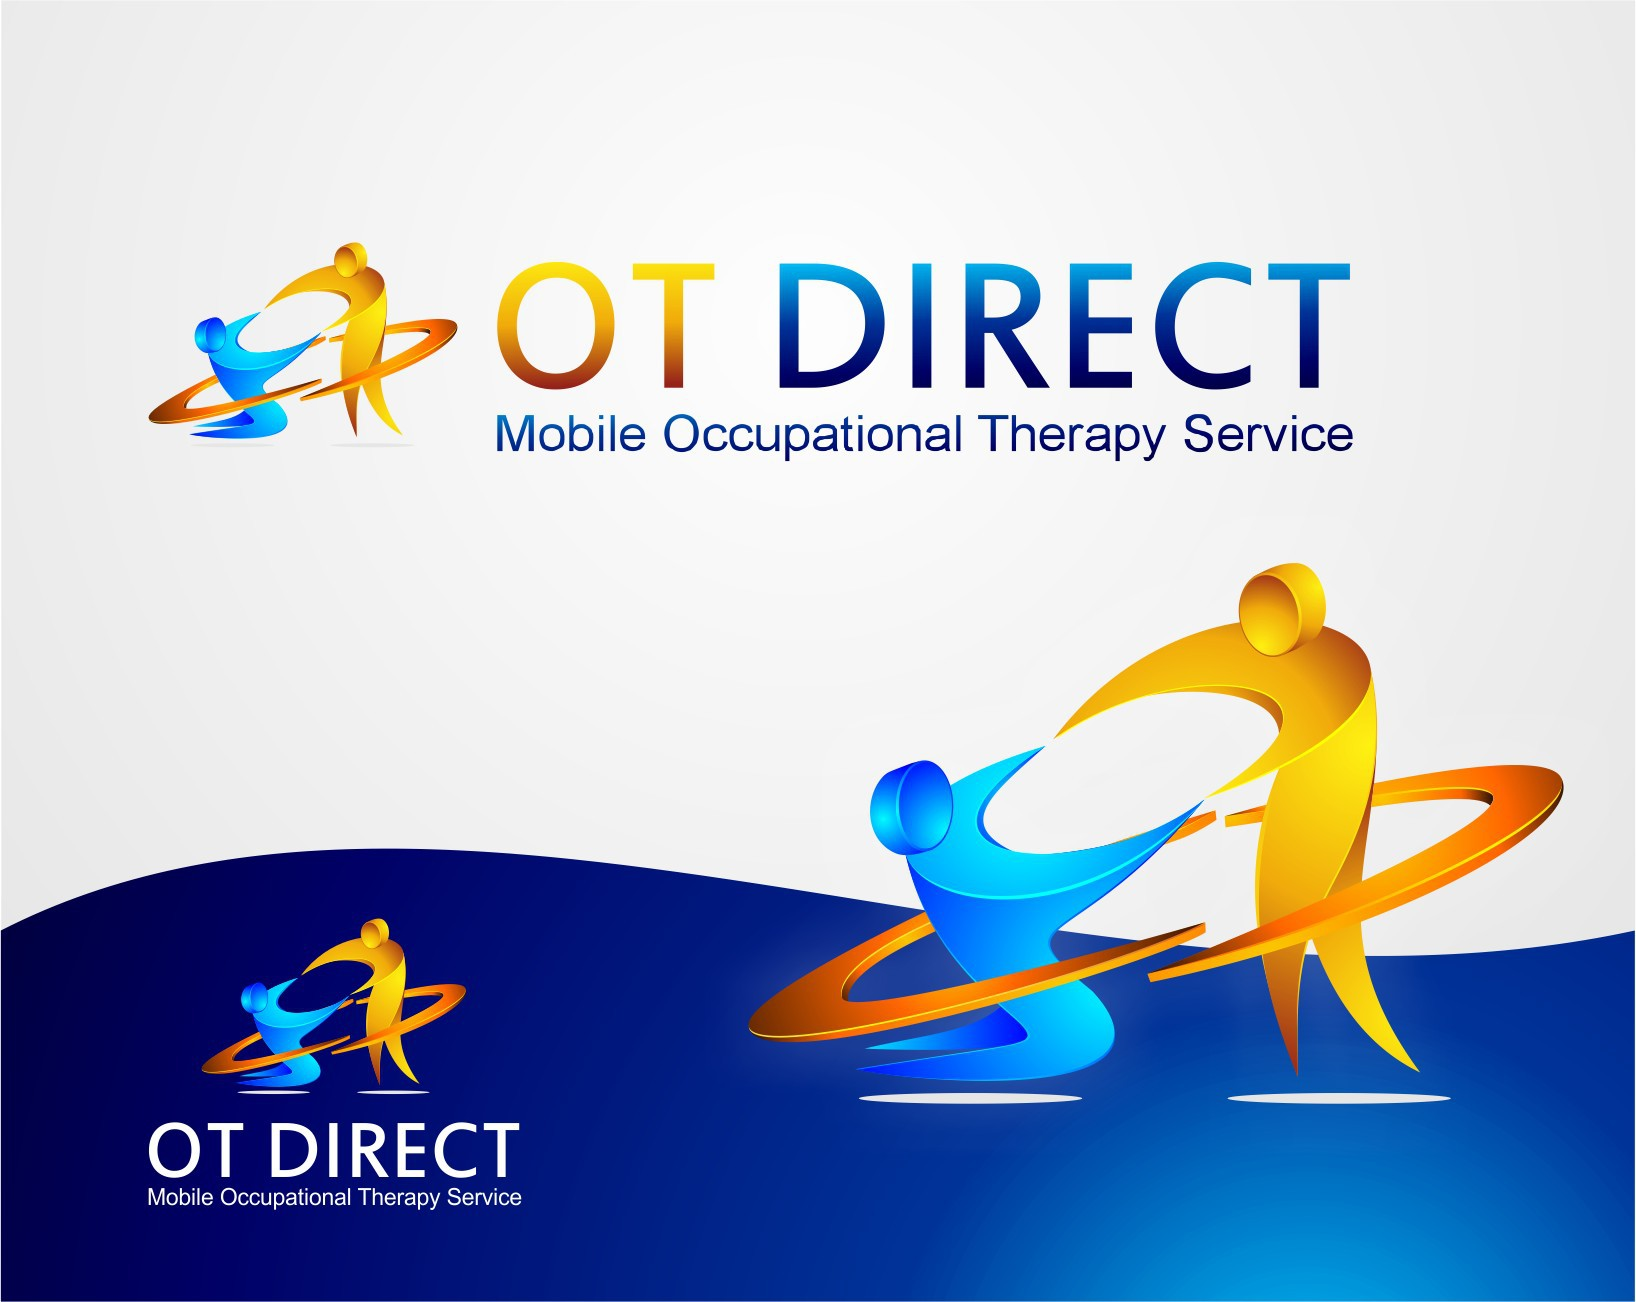 Help OT Direct with a new logo